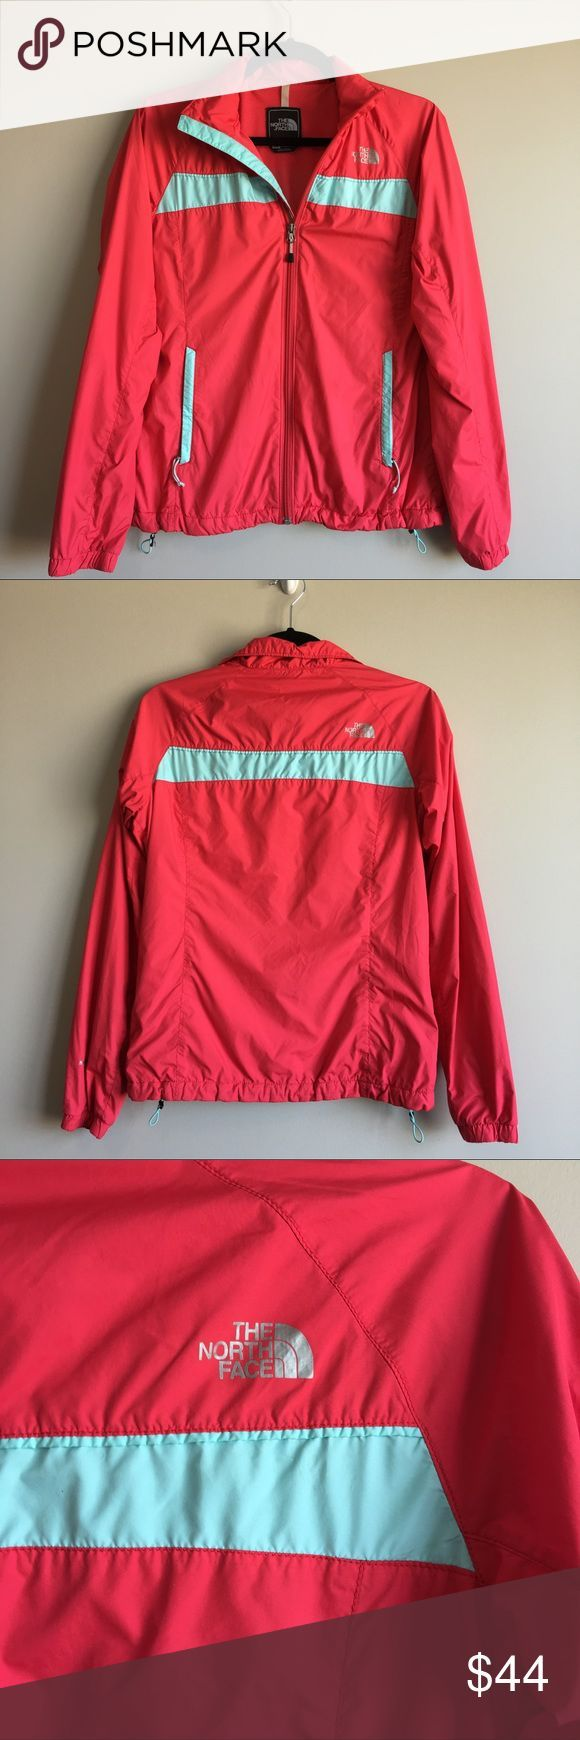 Northface bright coral red and teal windbreaker Size S Has two pockets that zip on the sizes and adjustable elastics on the bottom for a better fit Measures about 18 across the chest and 23 inches from shoulder to bottom Please feel free to message me with any questions! :) North Face Jackets & Coats